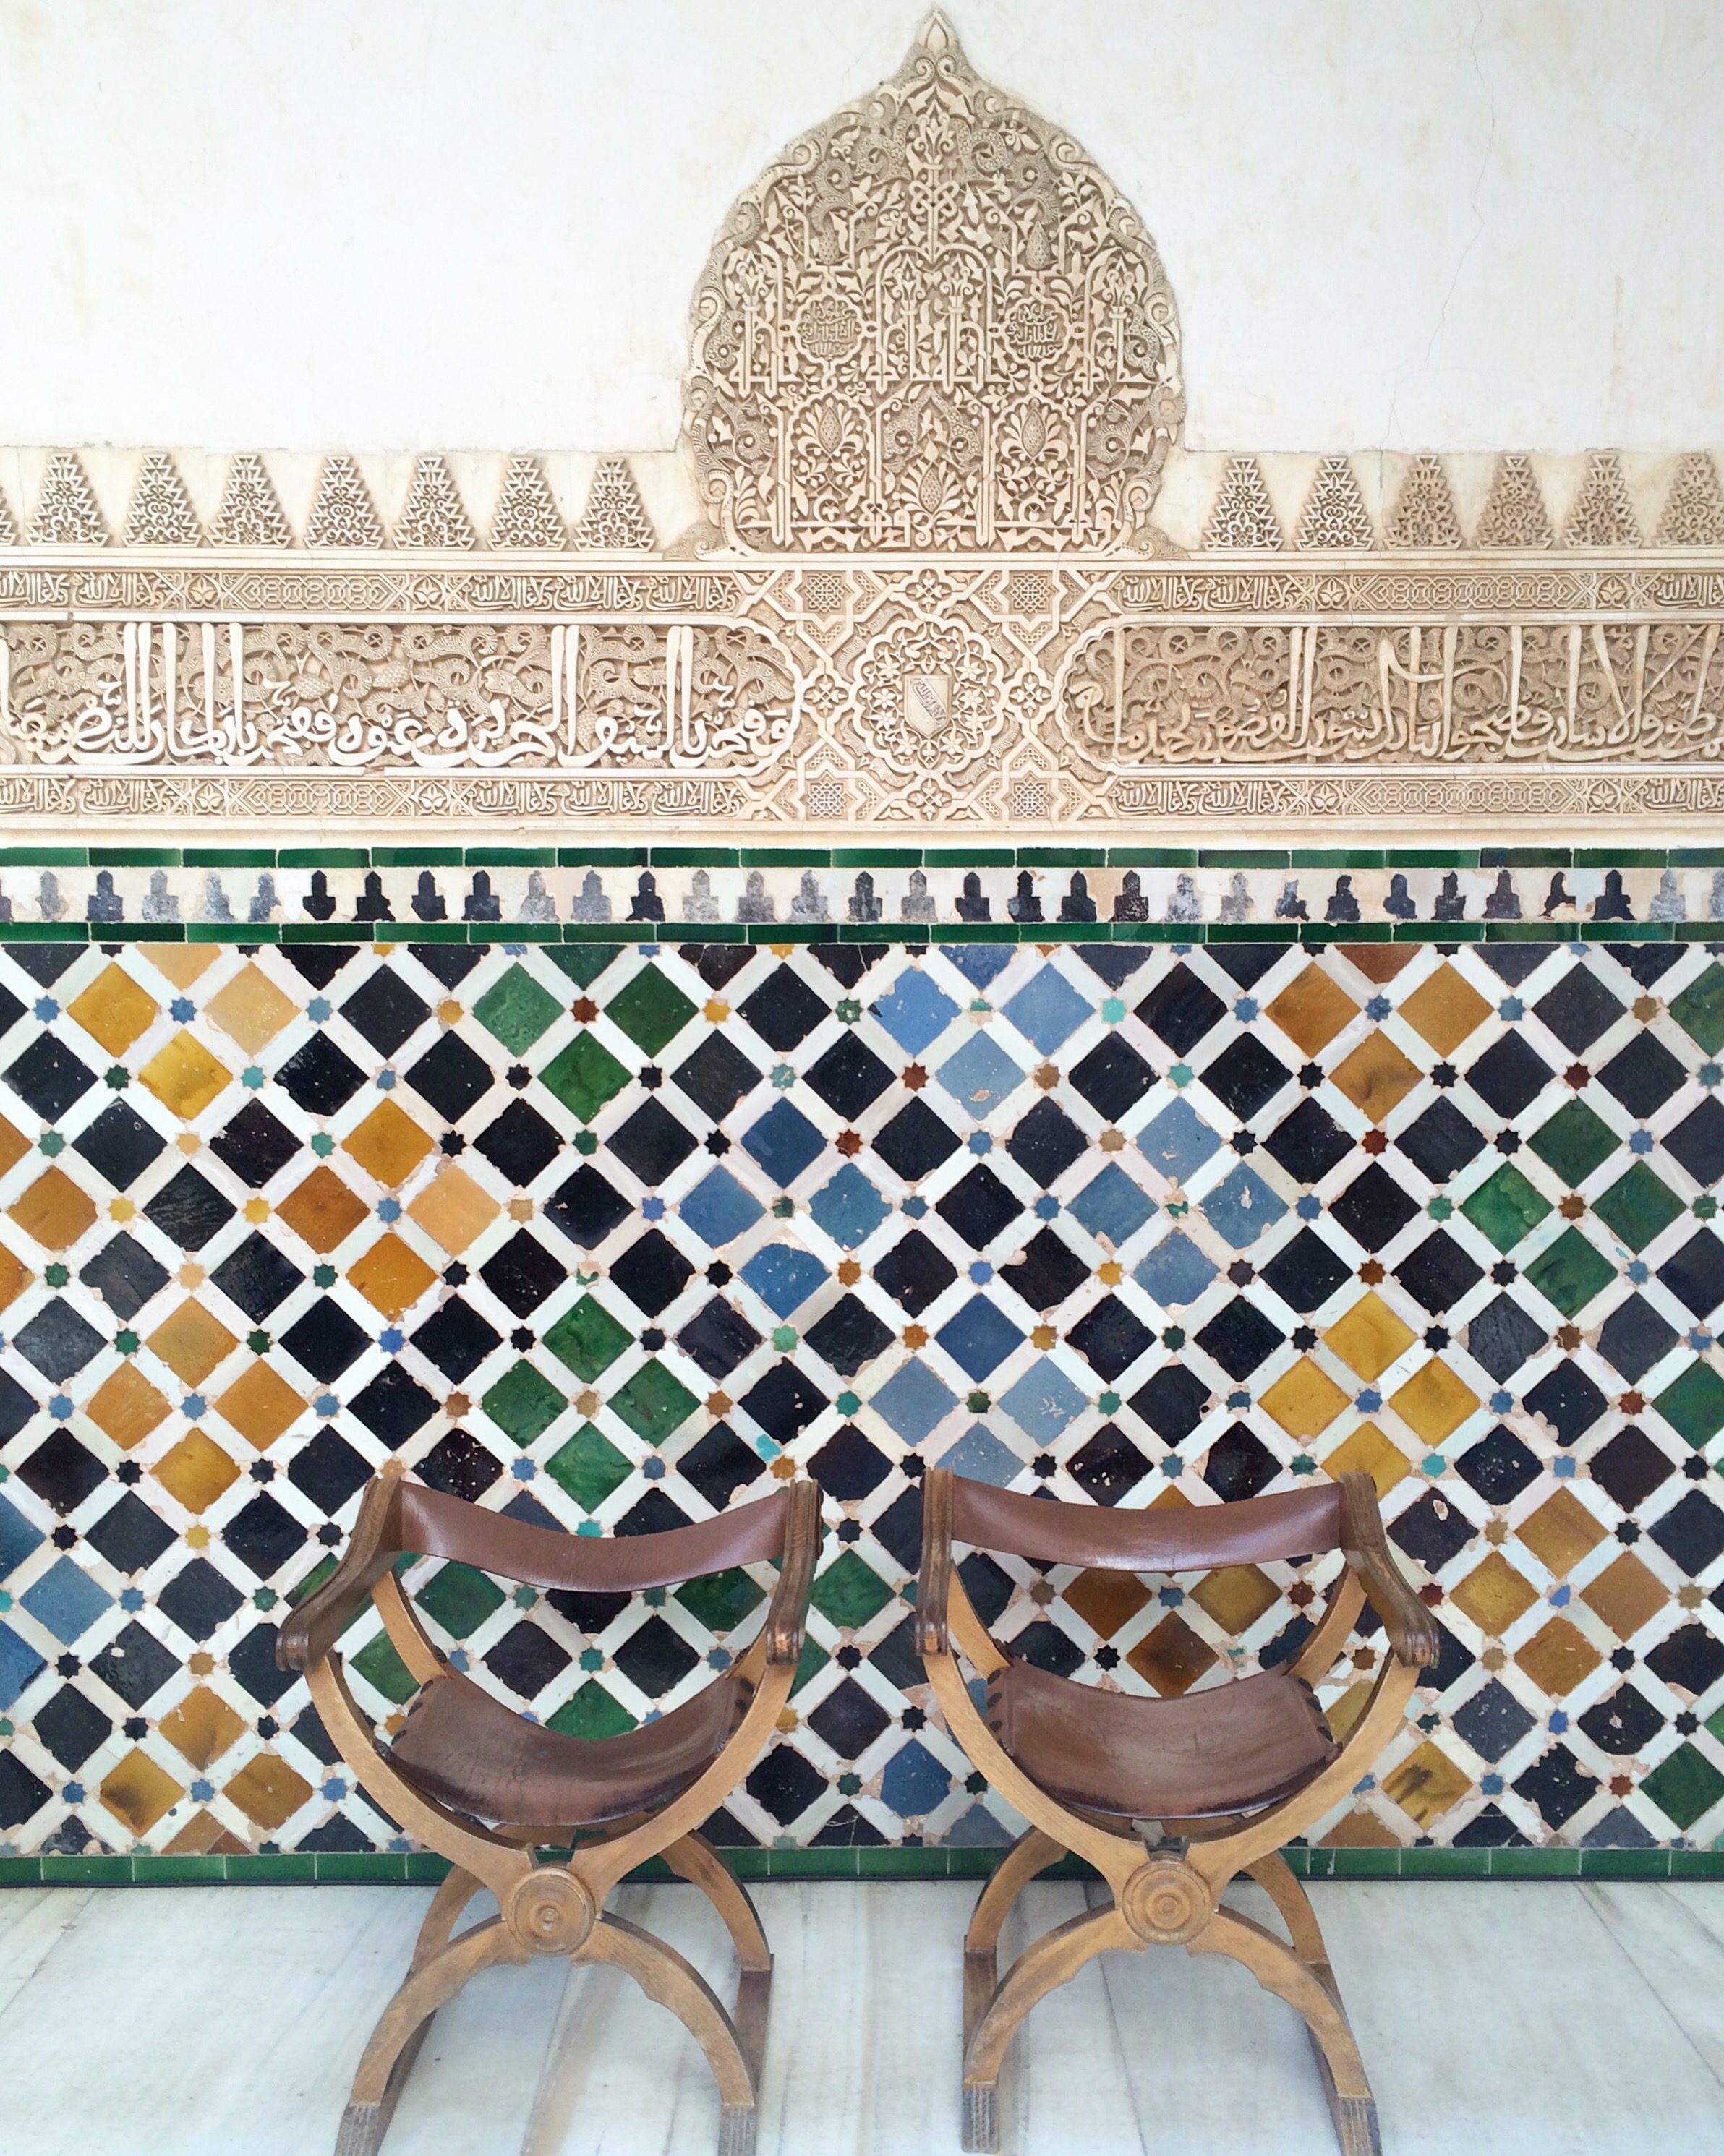 Decorative walls at the Alhambra